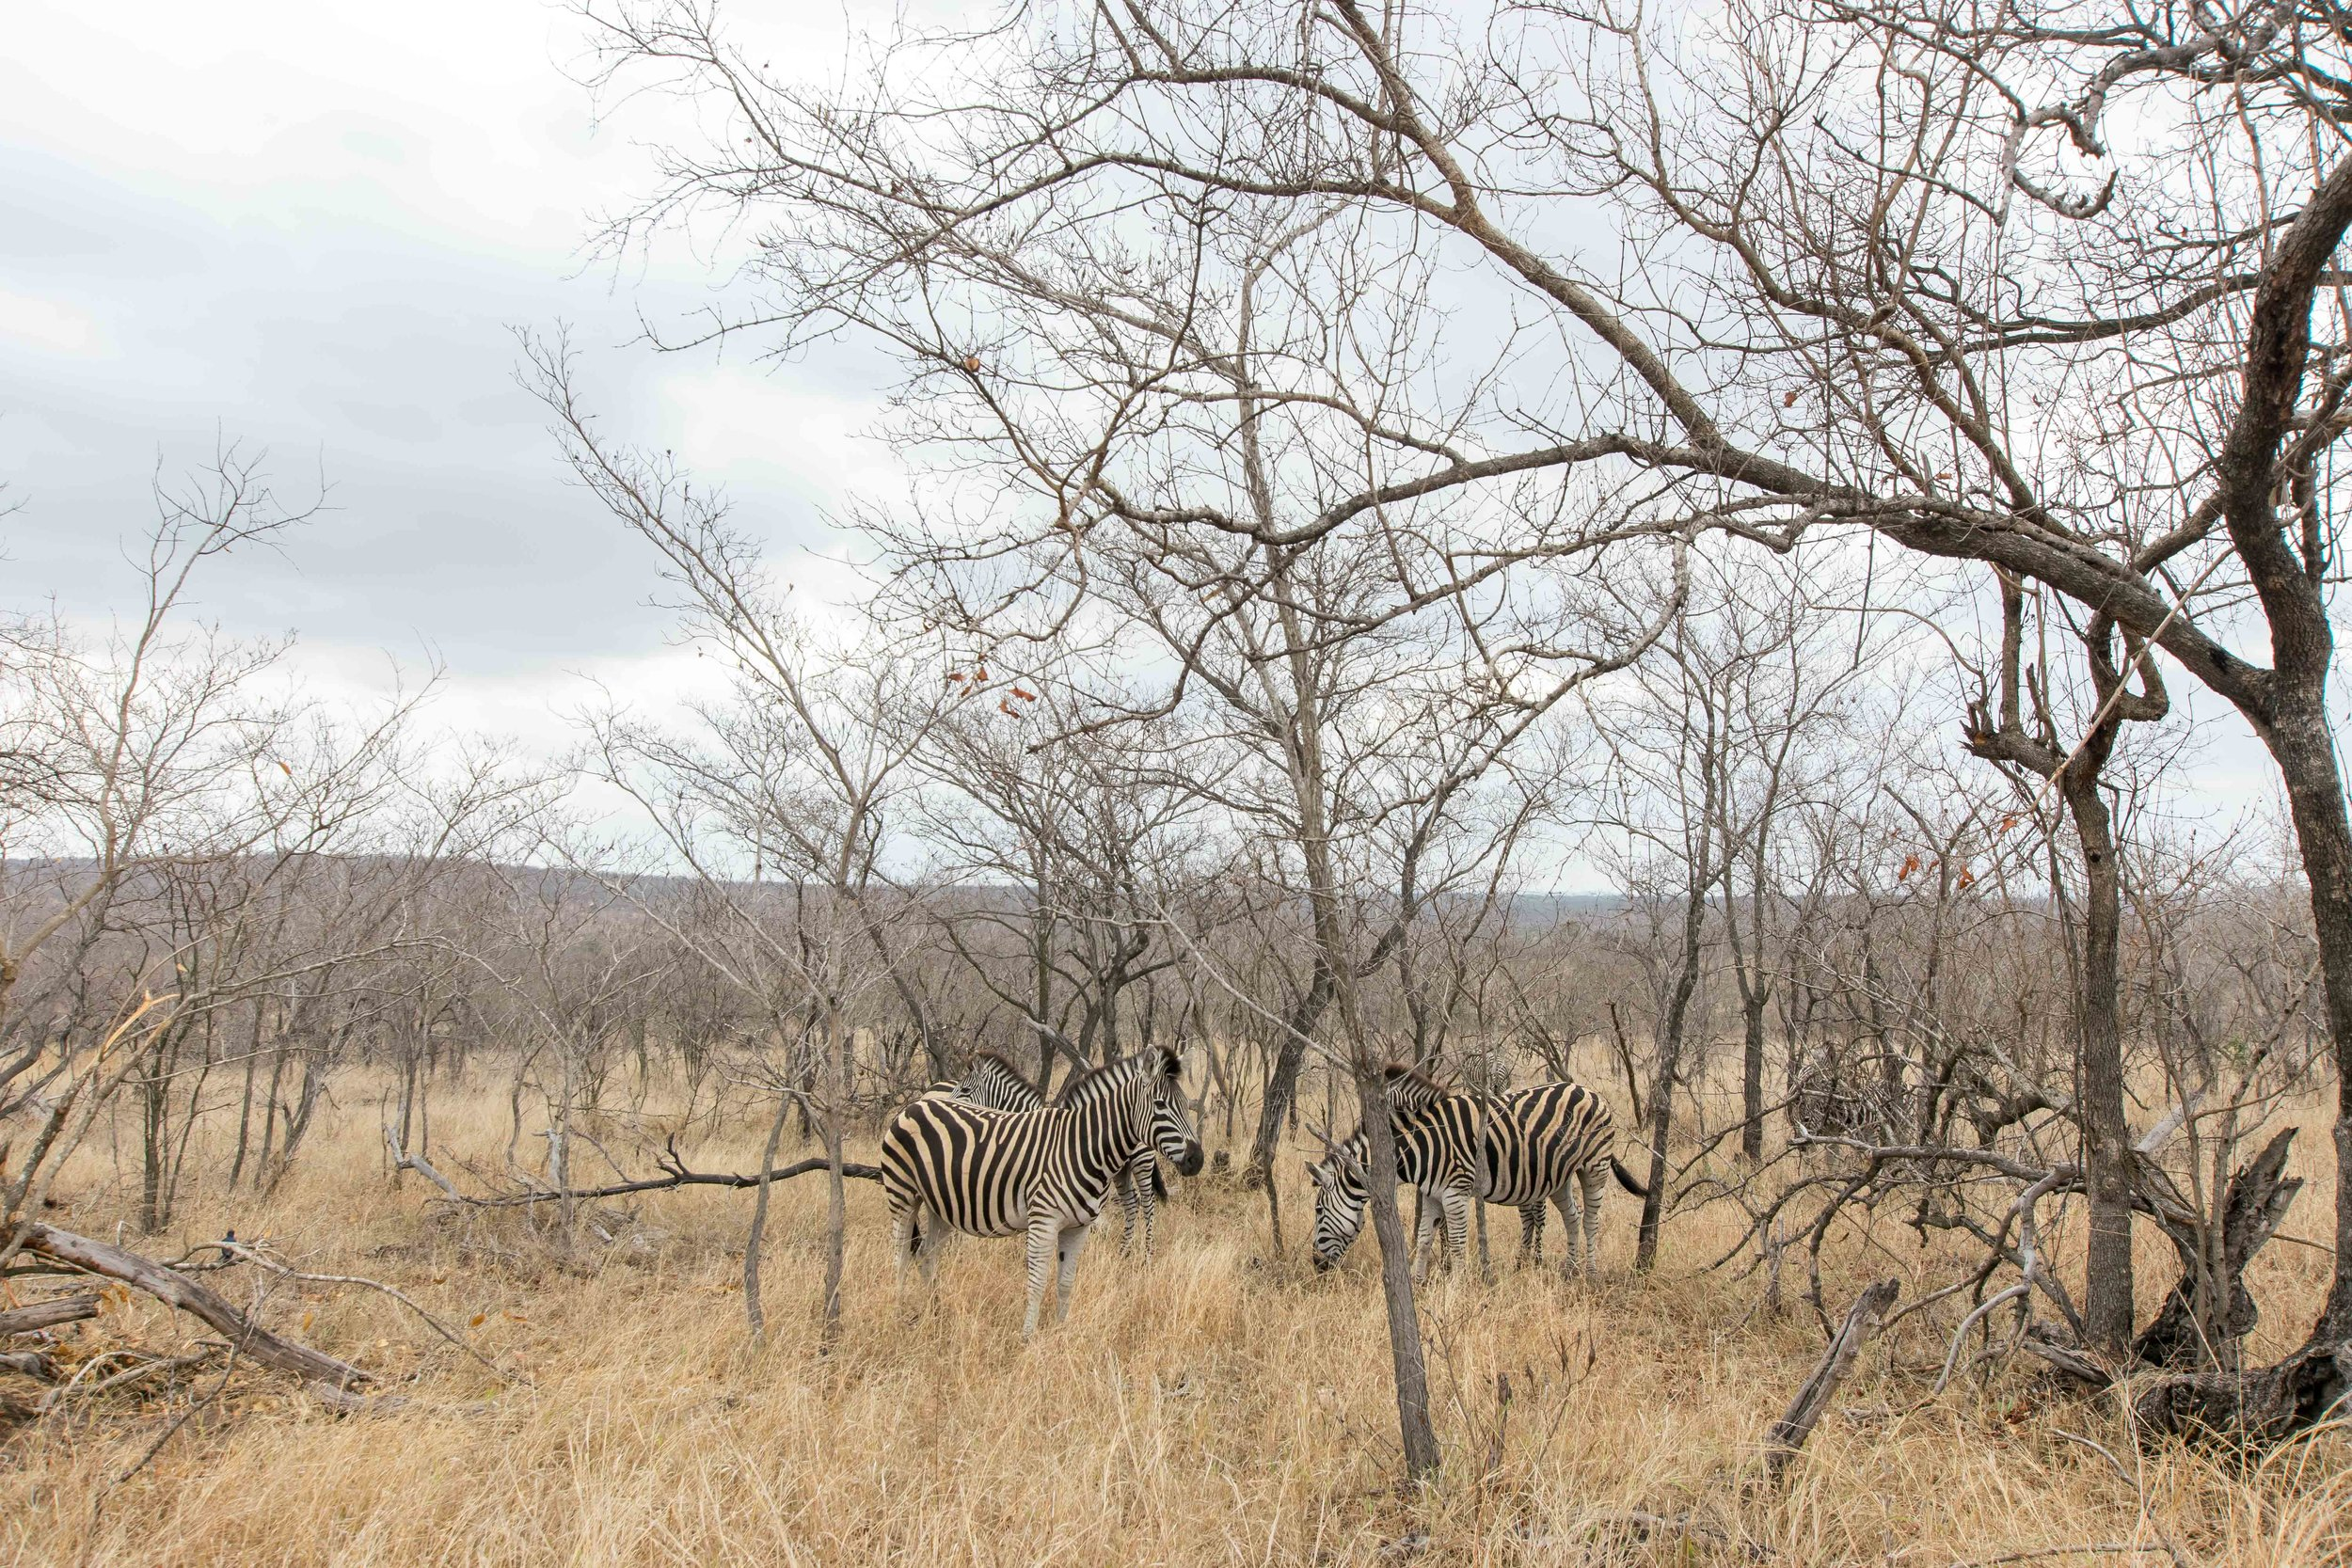 Hanging out with Zebras at Kruger National Park